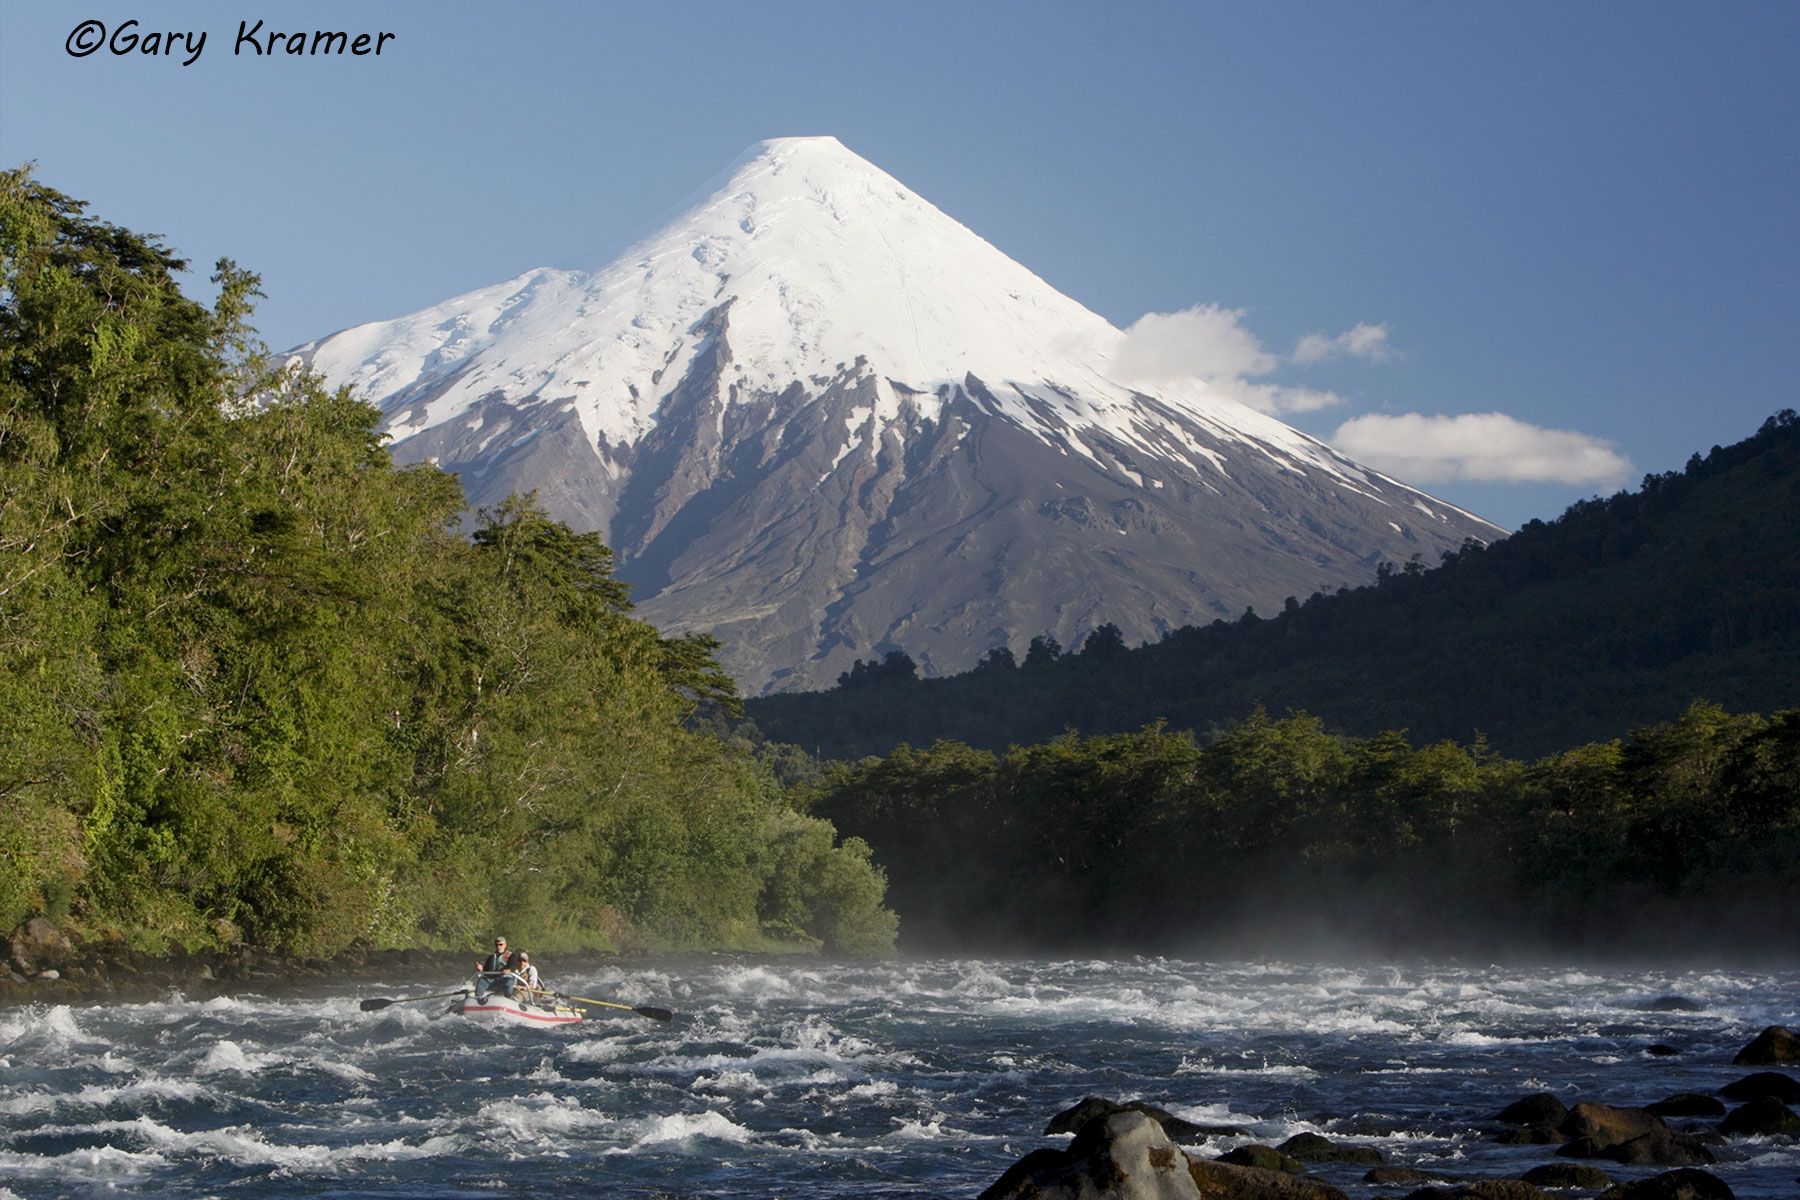 Running rapids in a rubber raft, Petrohue River, Chile - NFTCf#023d